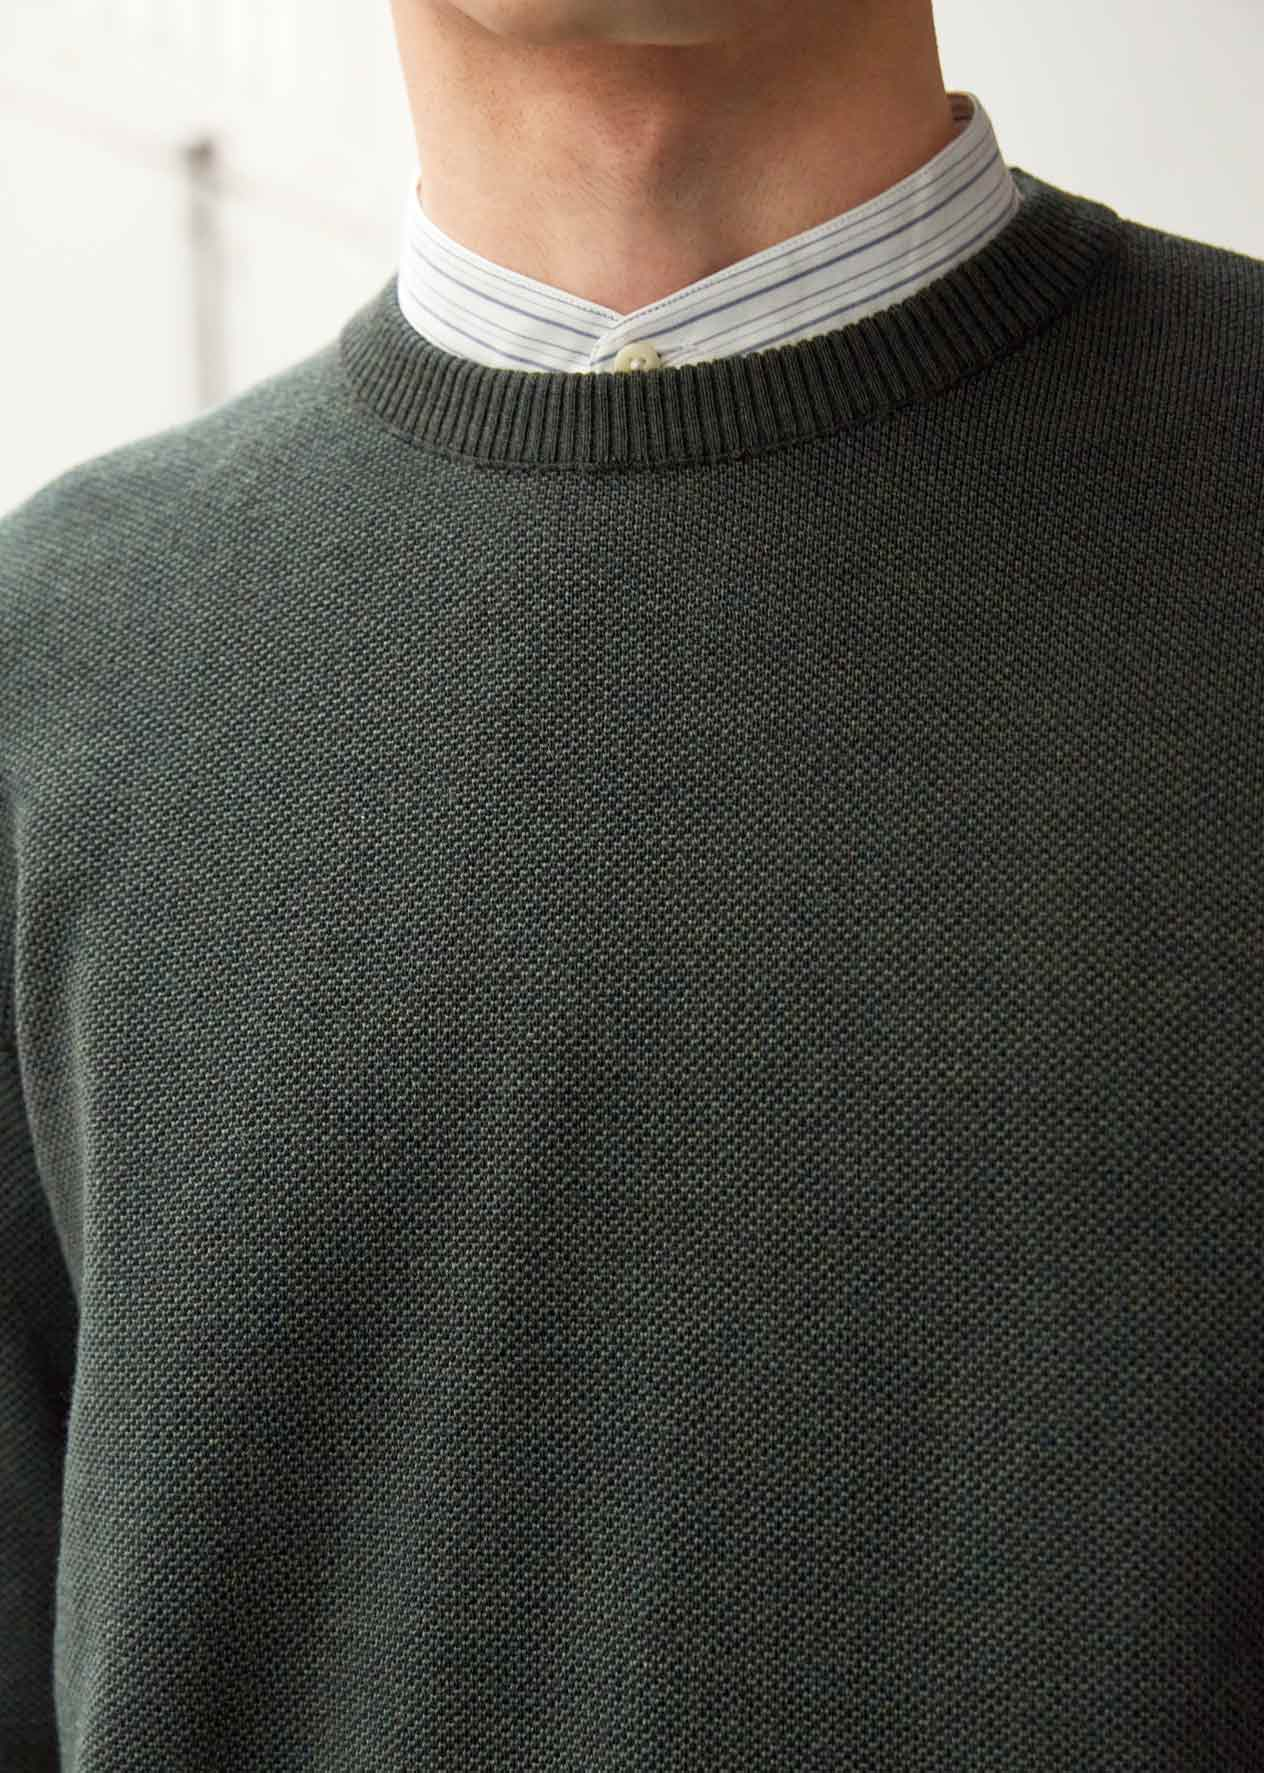 Crew neck knit - Merino soft wool - Green - De Bonne Facture